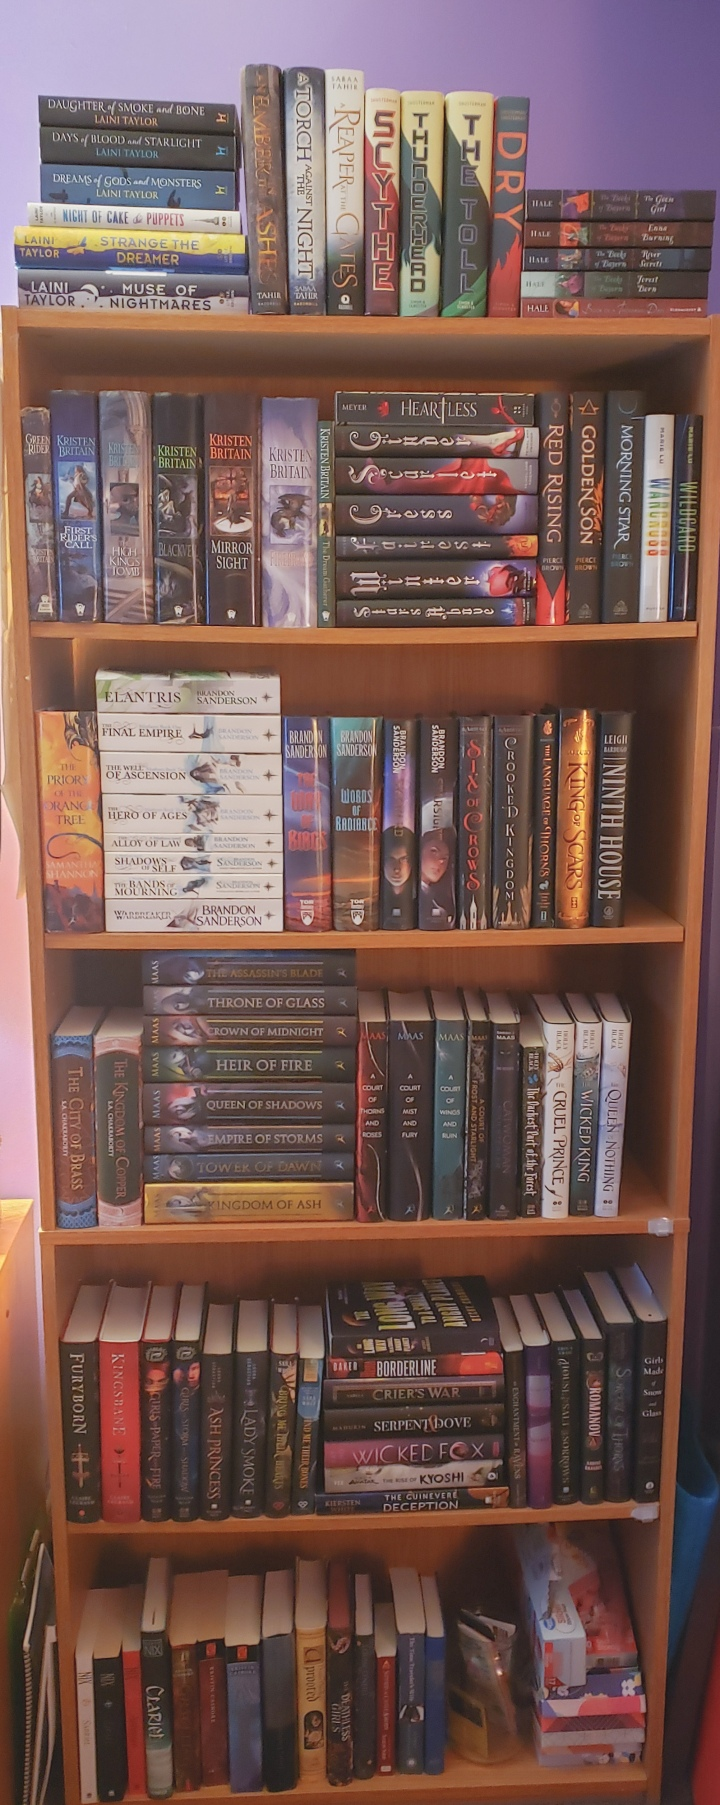 A Tour of My Bookshelves!